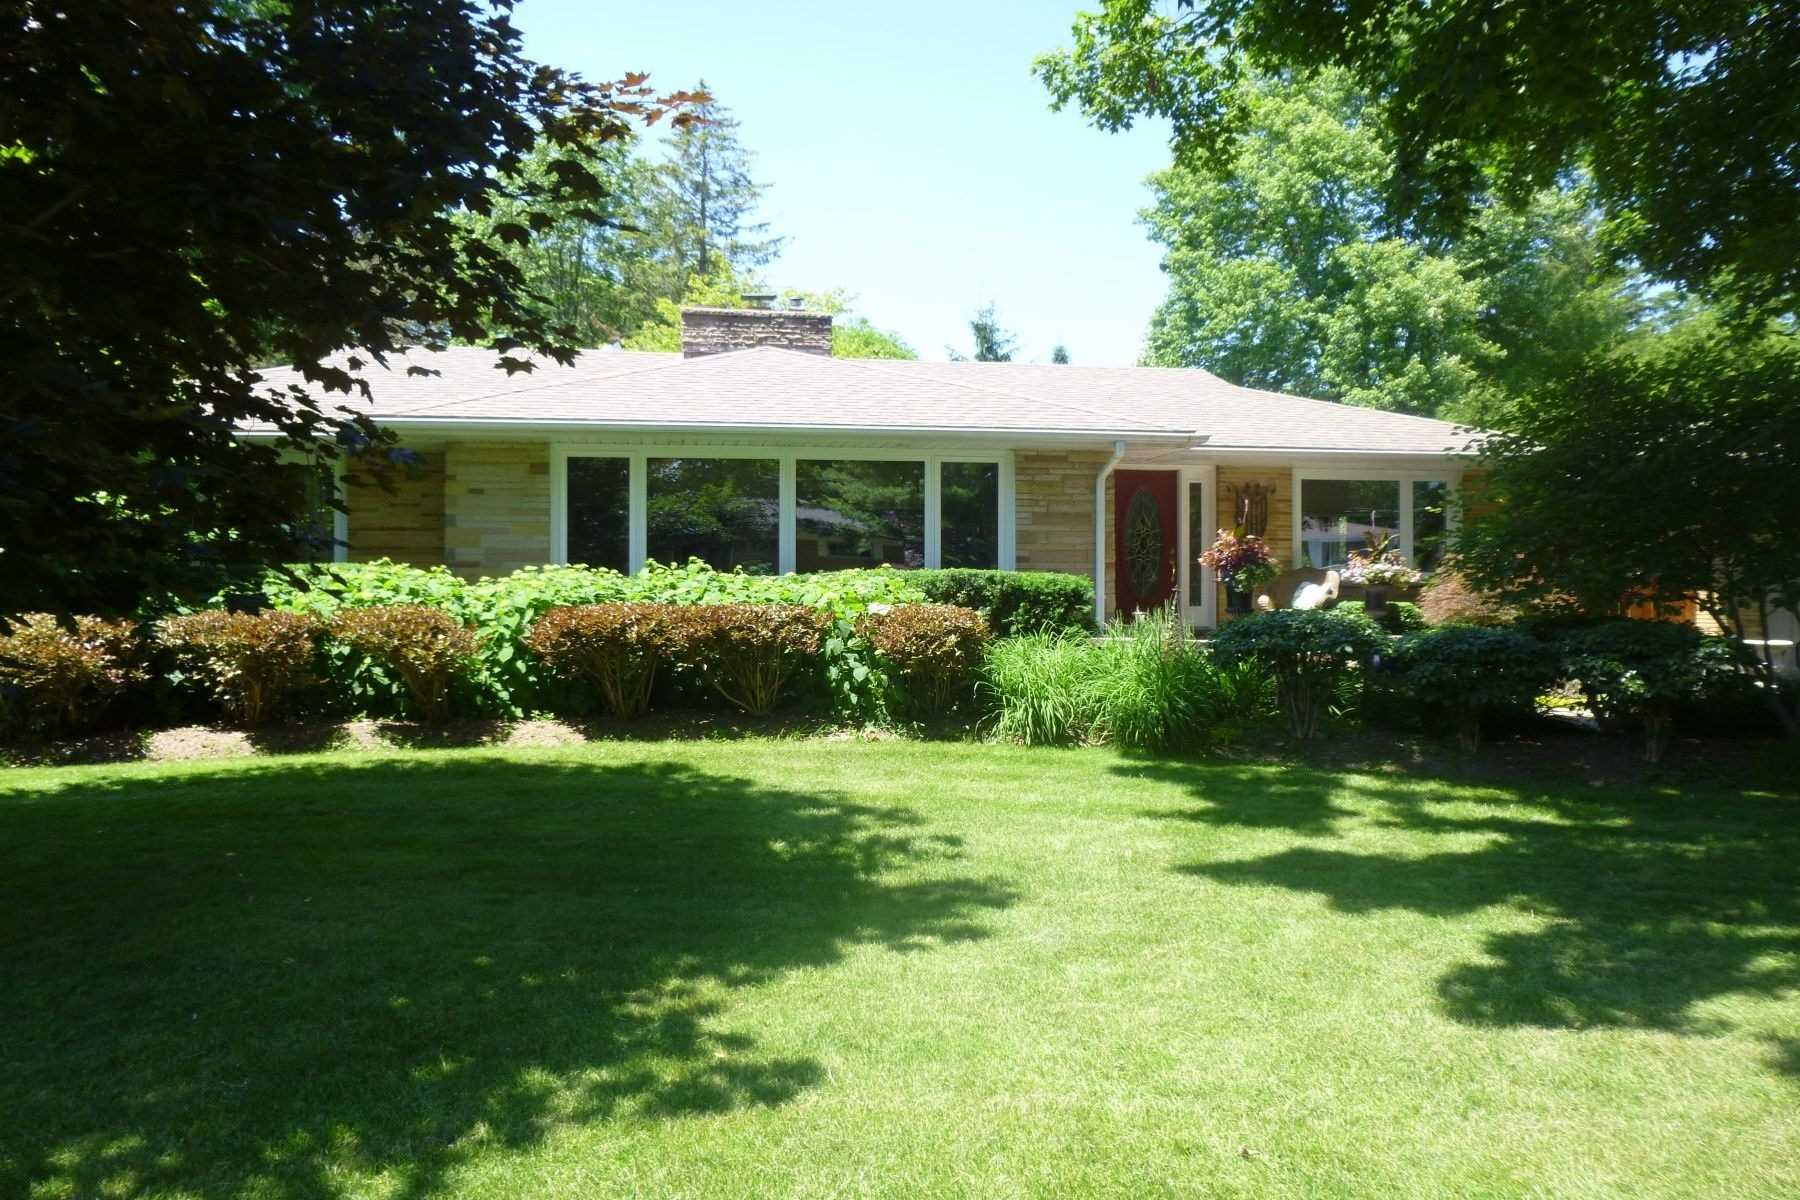 pictures of house for sale MLS: X4693069 located at 23 Belholme Ave, Brant N3T1R9